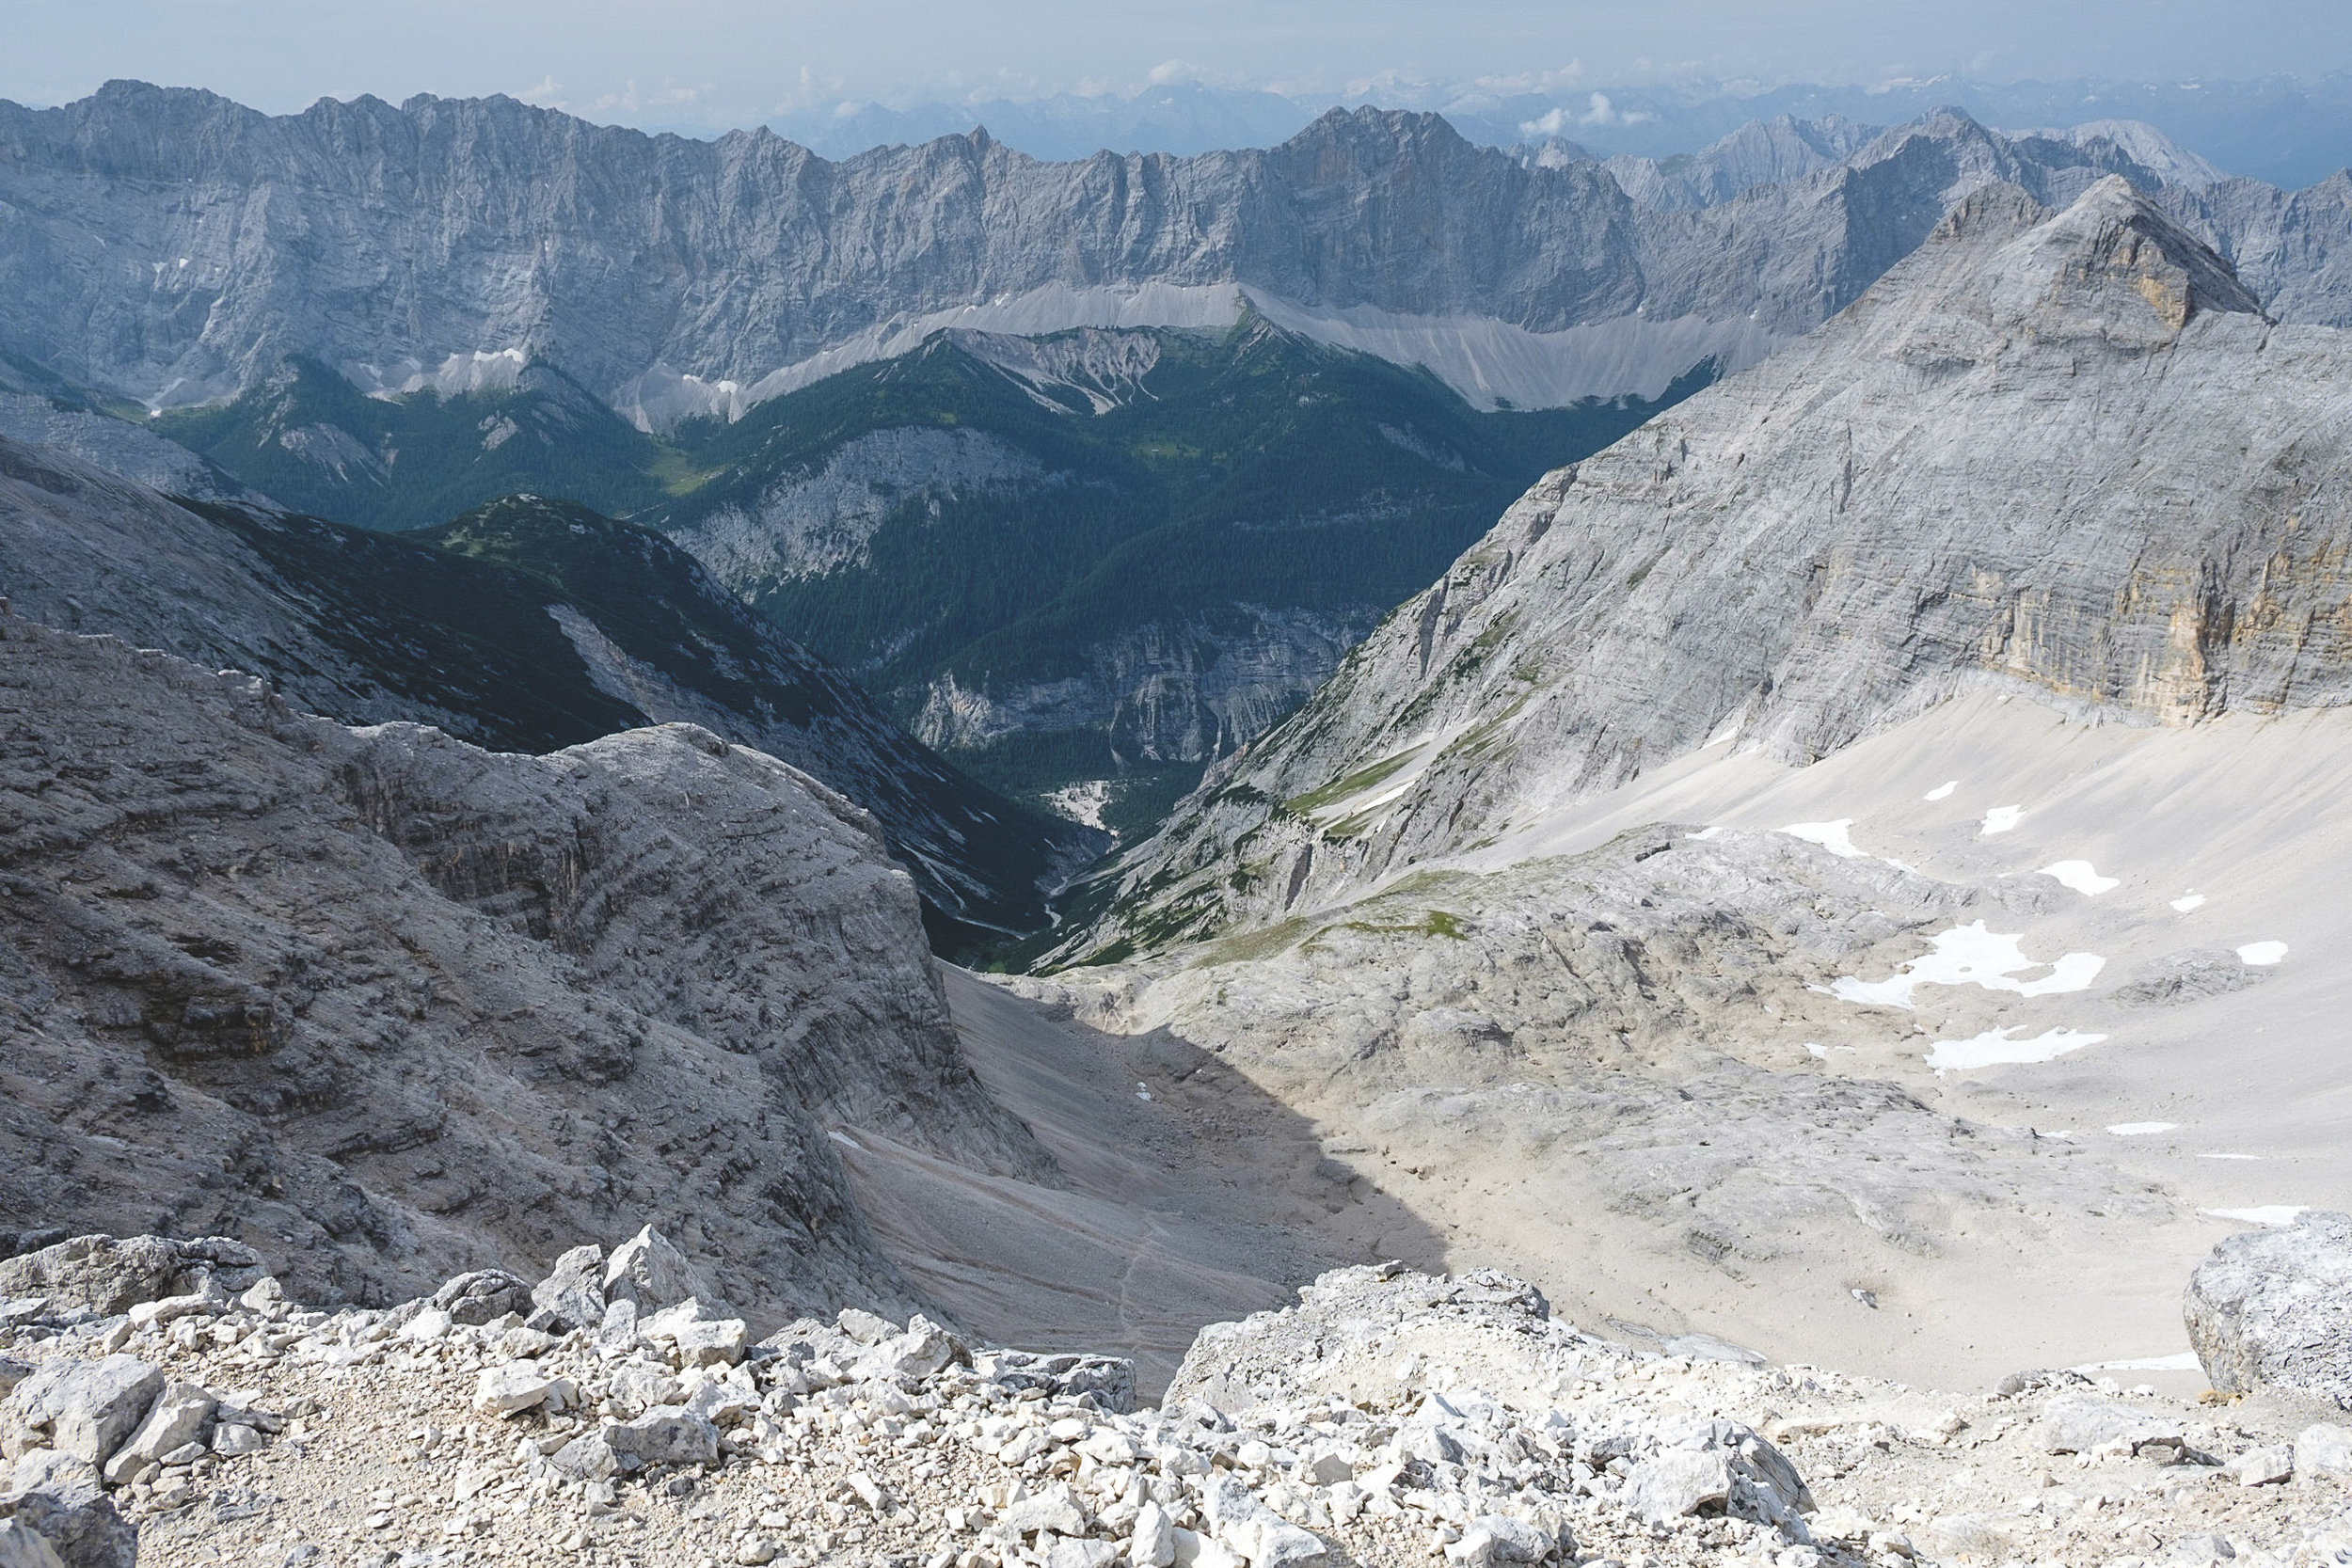 View from the Birkkarspitze over the southern Karwendel